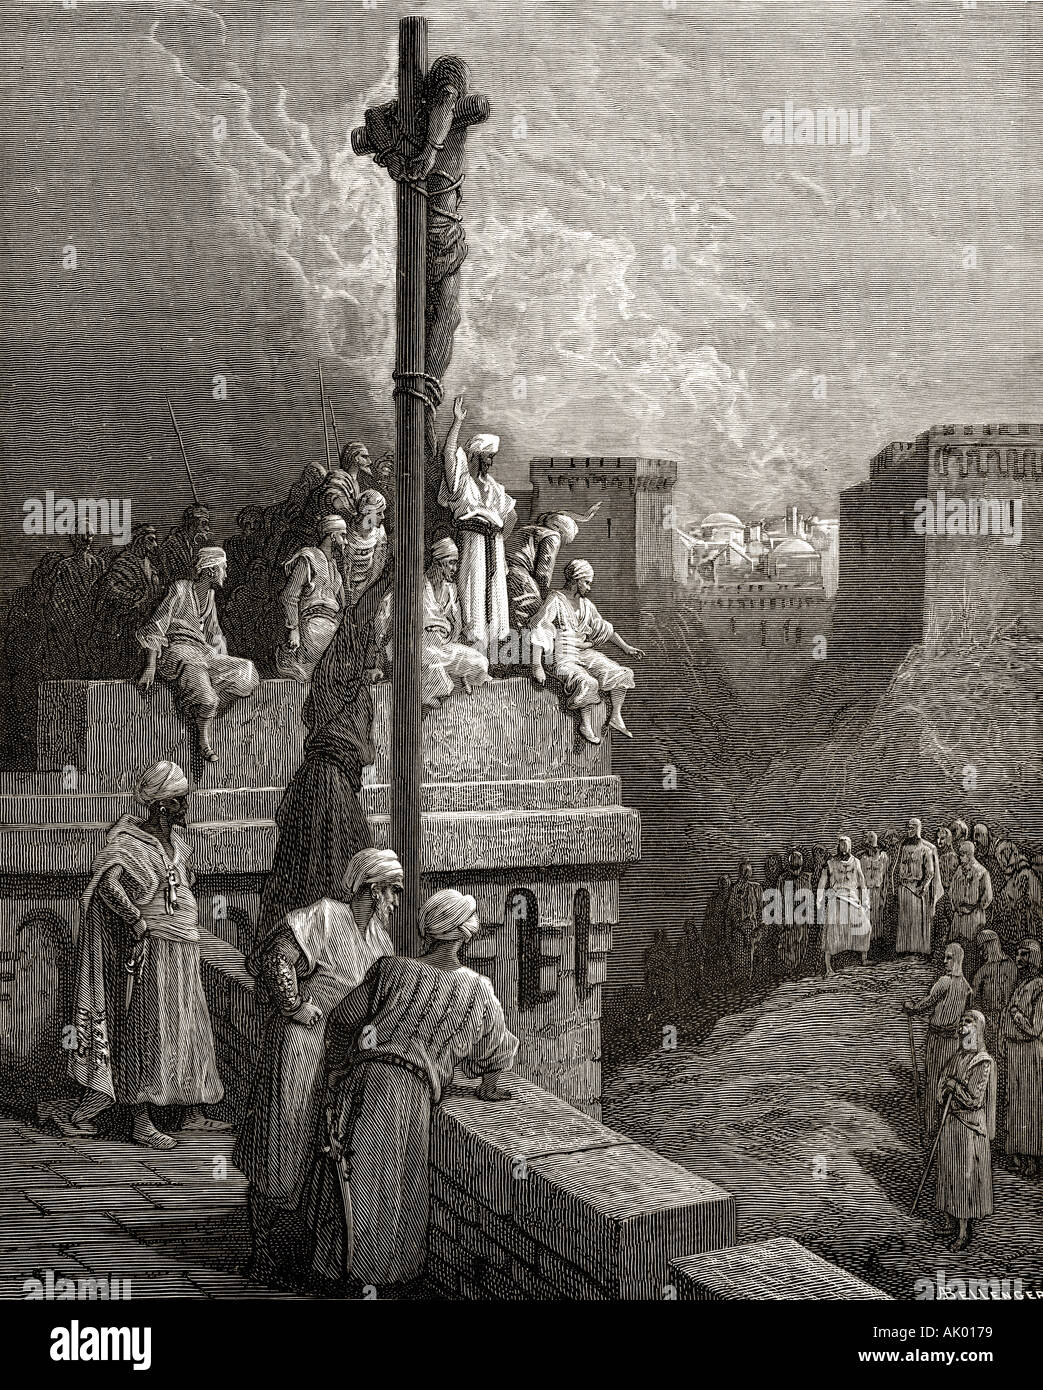 Gerard of Avesnes exposed on the walls of Arsuf. First crusade,1096 -1146. - Stock Image